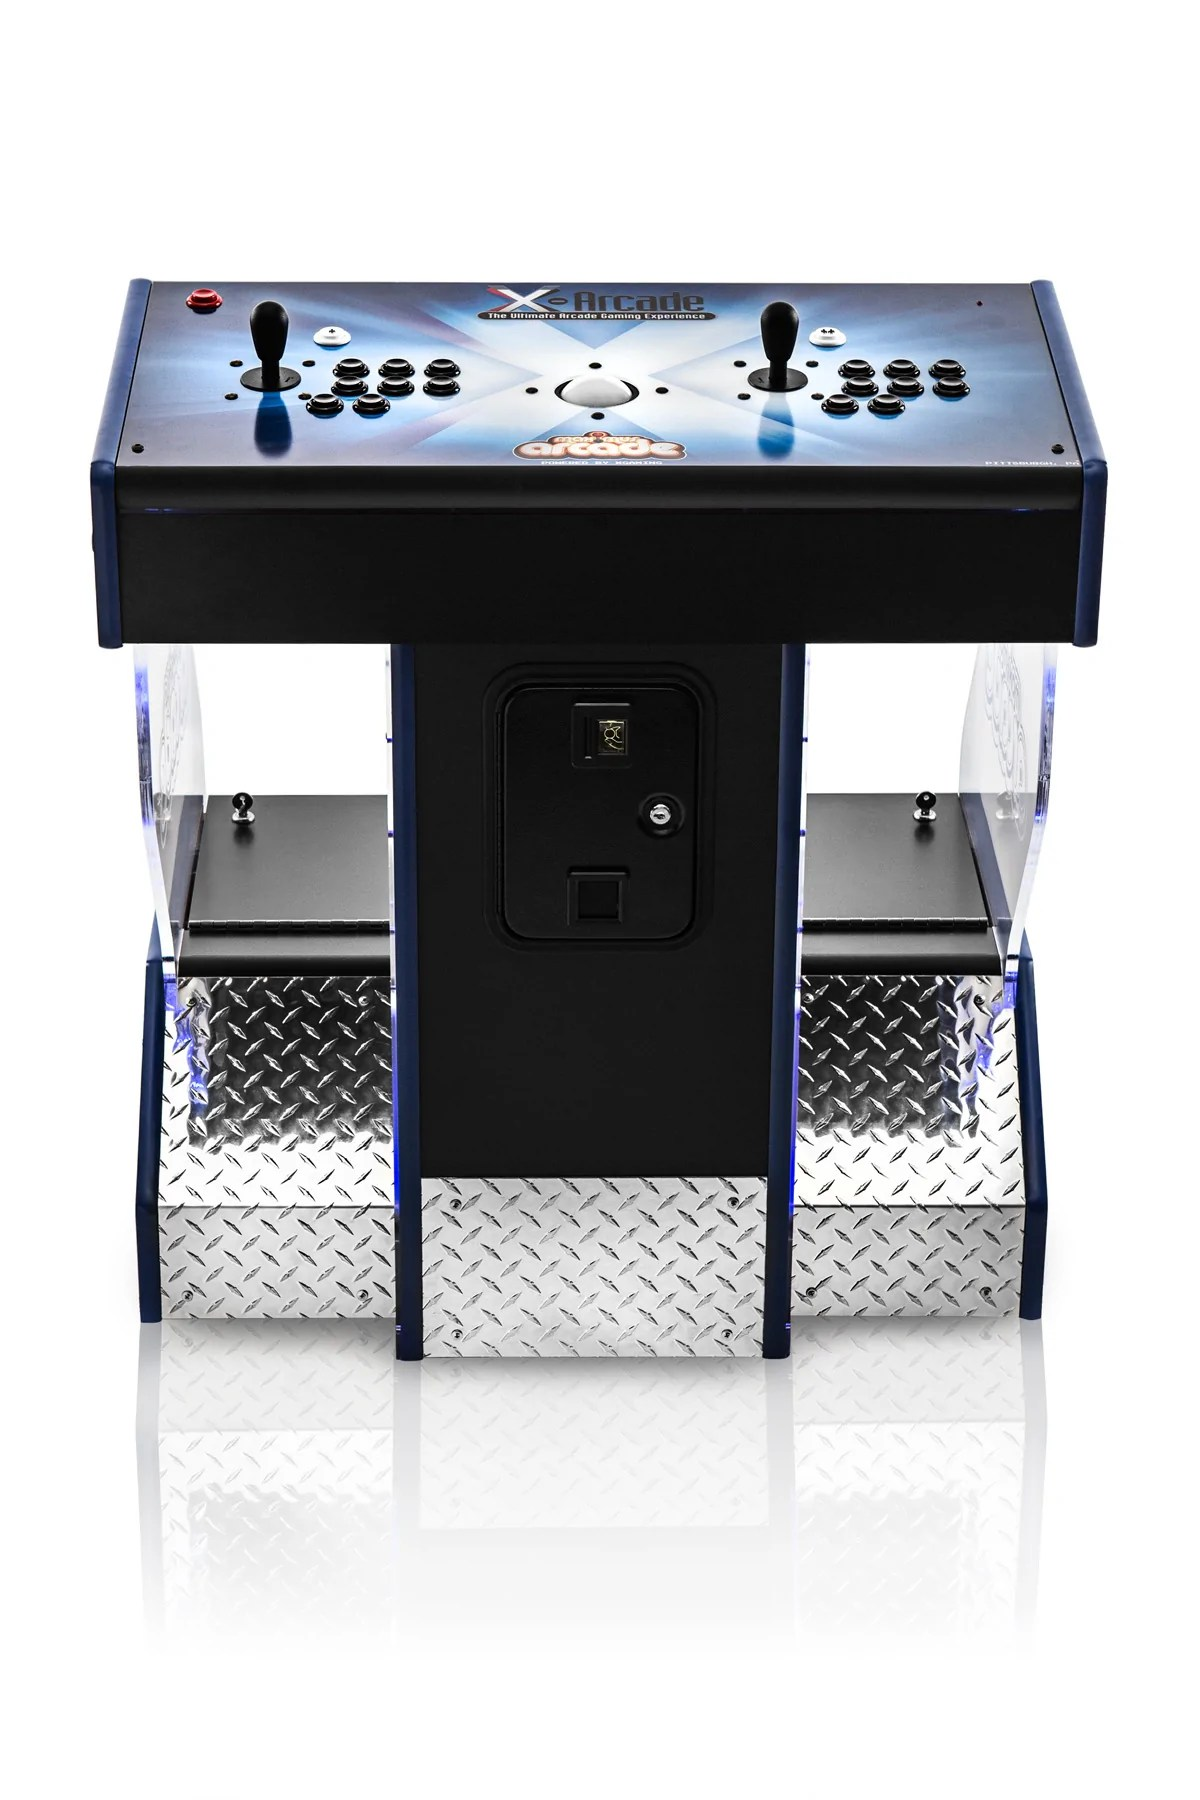 The Ultimate Mame Cabinet  Xgaming XArcade